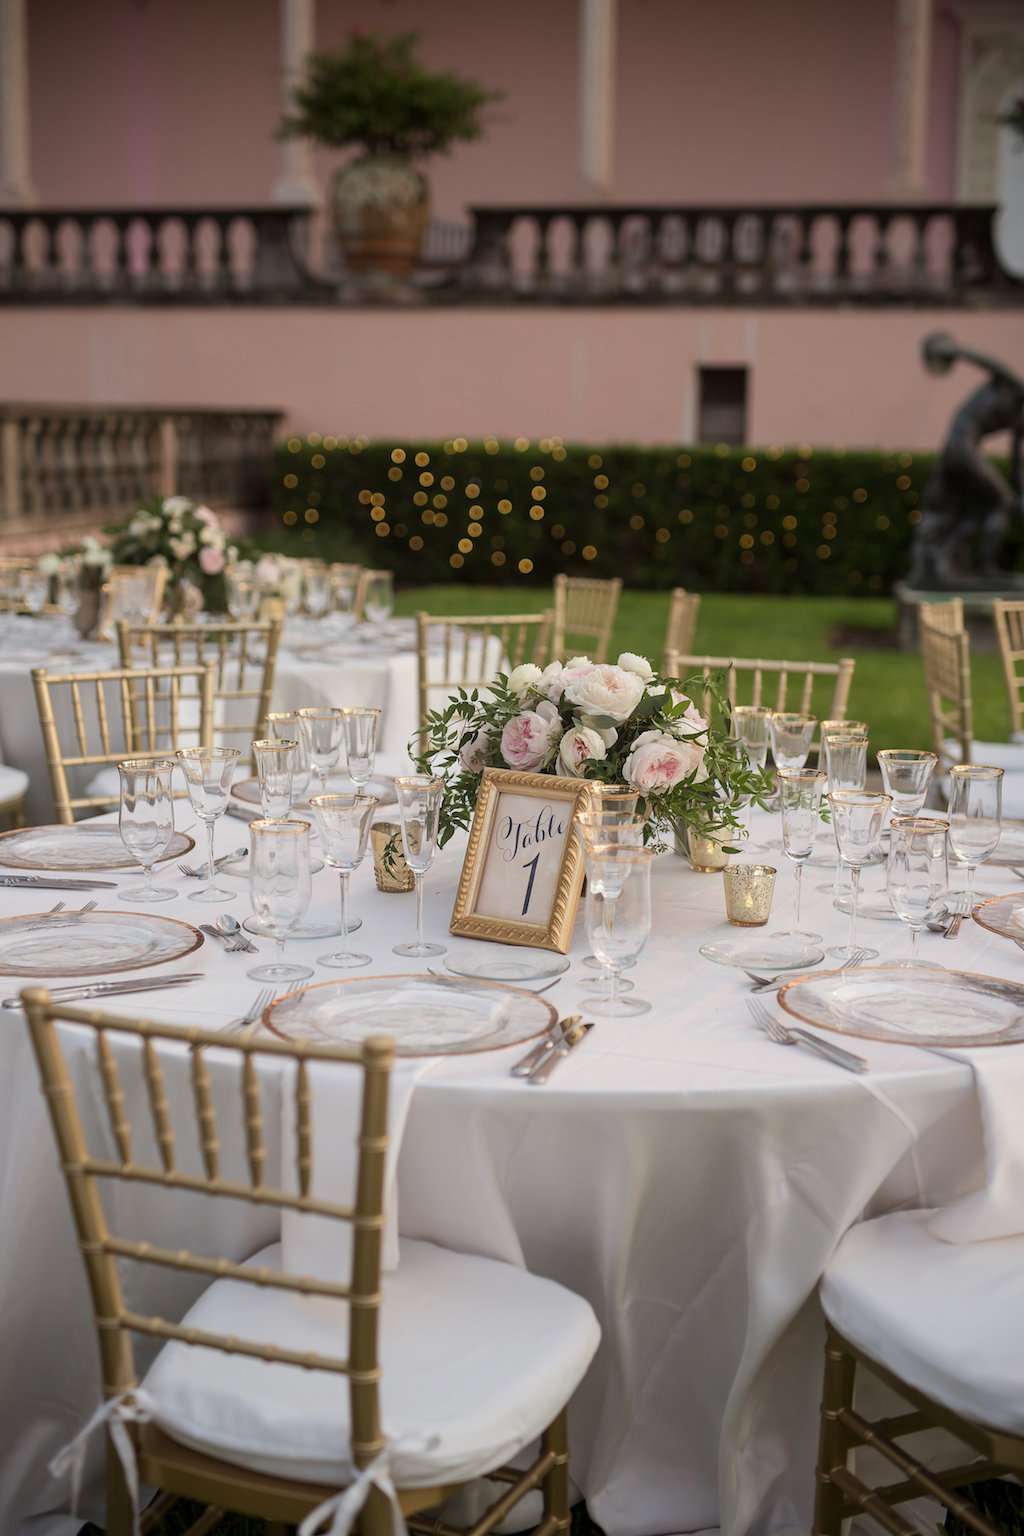 Elegant White Outdoor Garden Wedding with White Linens and Gold Table Number with Low Blush Pink Centerpieces